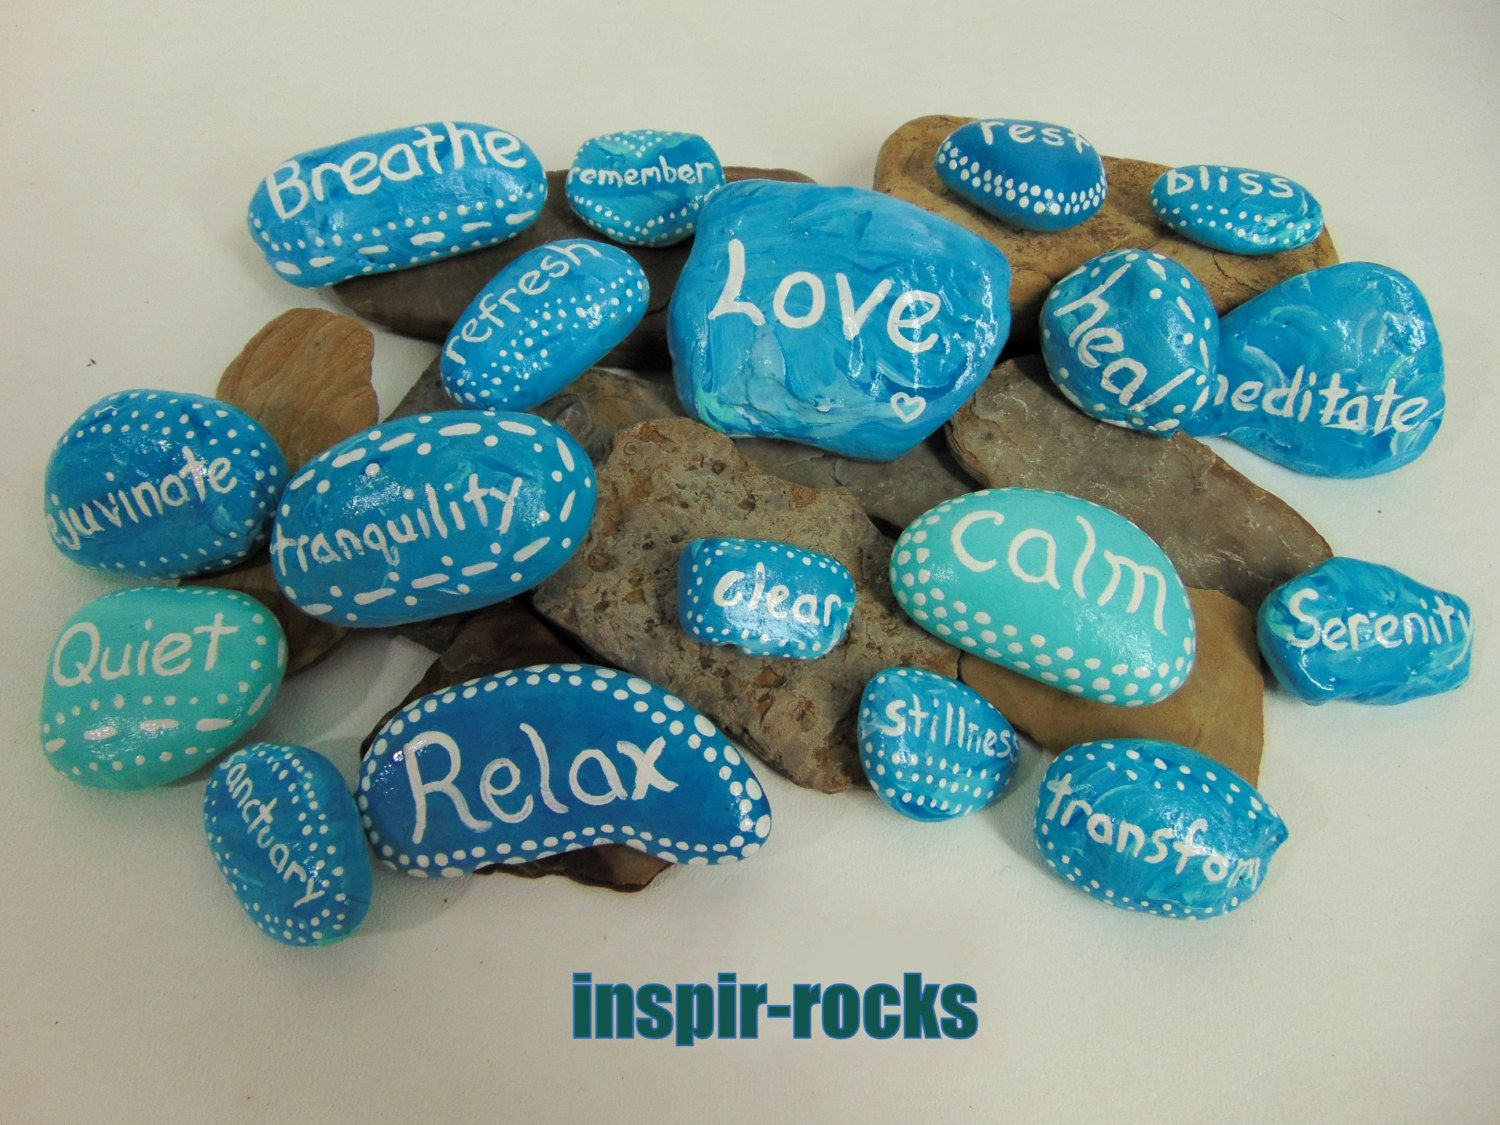 $48.88 set of 18 Hand Painted Beach Inspir-rocks Inspirational Words Decorative Blue Green by wardrobetheglobe on Etsy